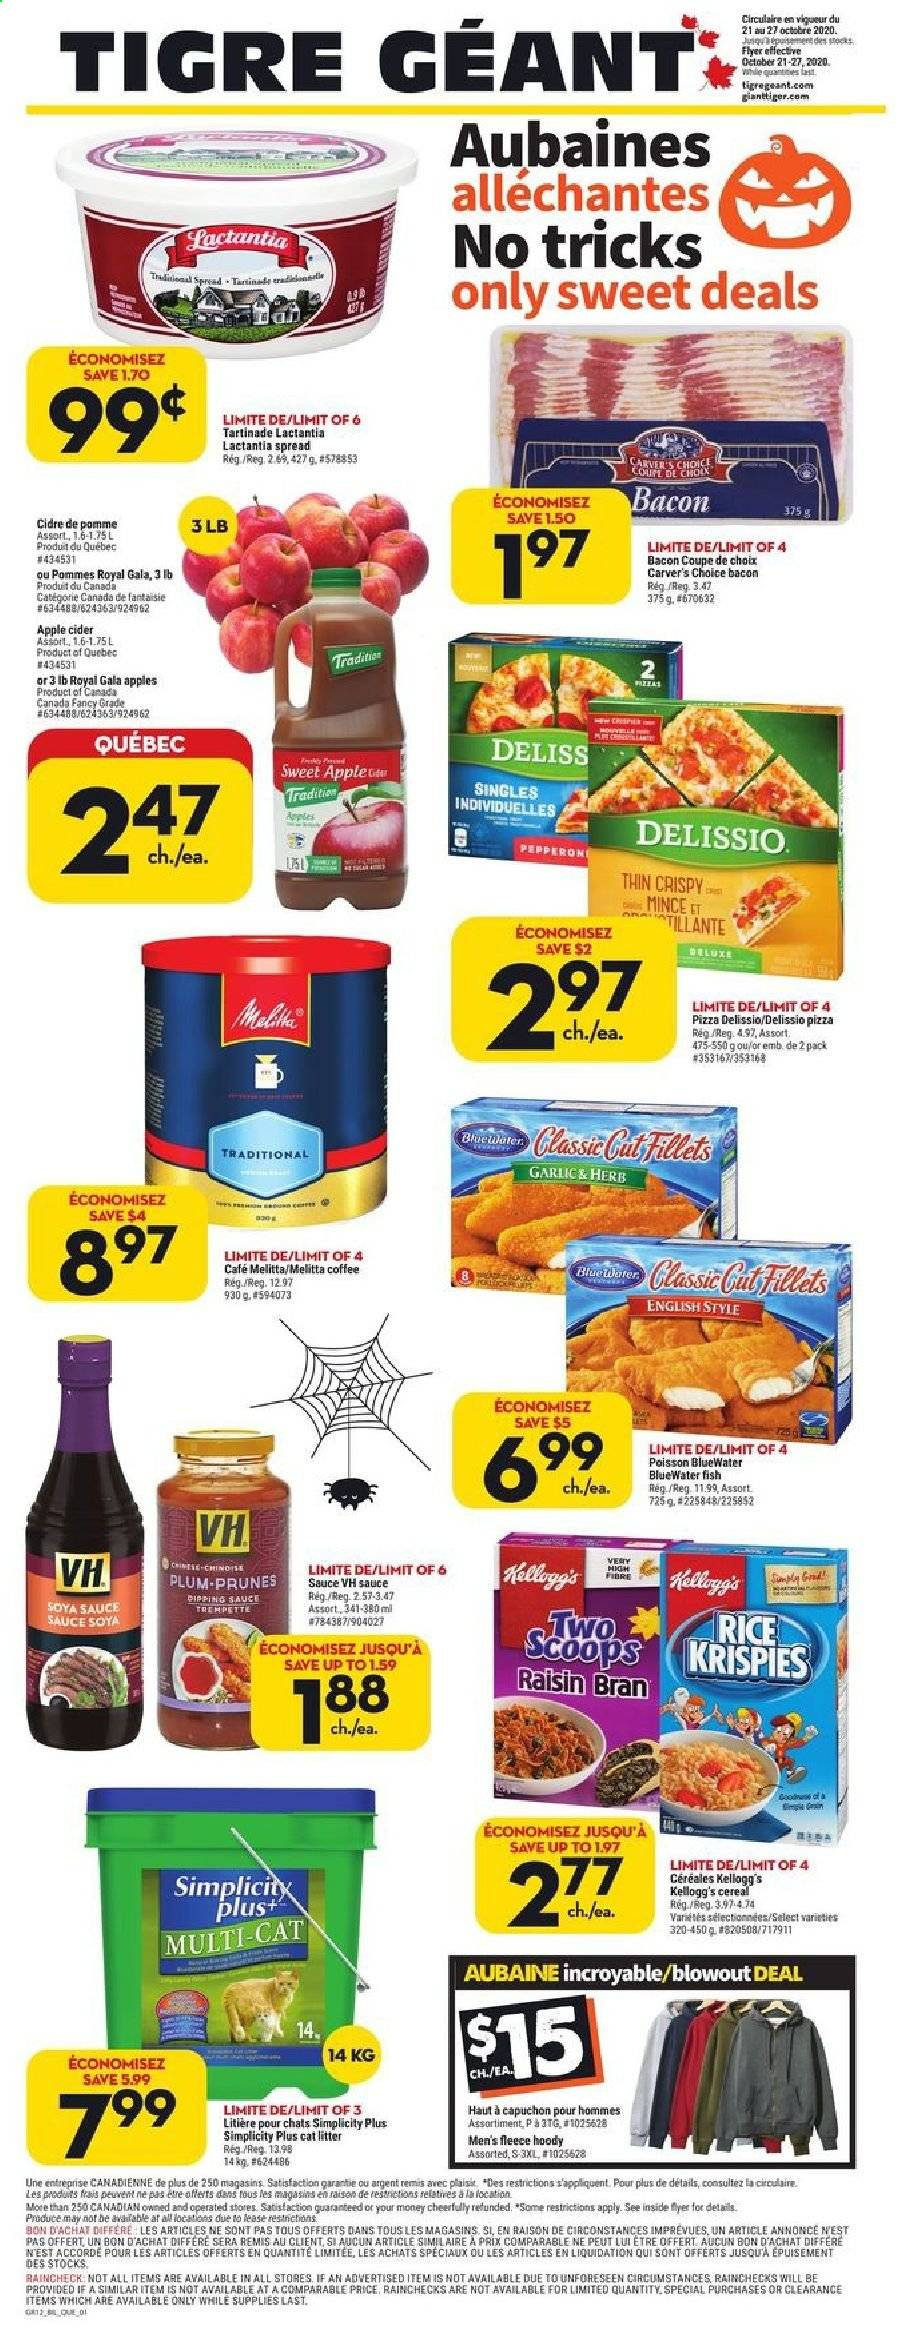 Giant Tiger Flyer - October 21, 2020 - October 27, 2020 - Sales products - apple cider, bacon, bran, cap, cat litter, cereals, coffee, gala apples, garlic, litter, rice, soya sauce, pizza, prunes, cereal, herb, sauce, pommes, café, cidre, coupe, prune, kellogg's, sauce soya, fish, herbs, poisson. Page 1.